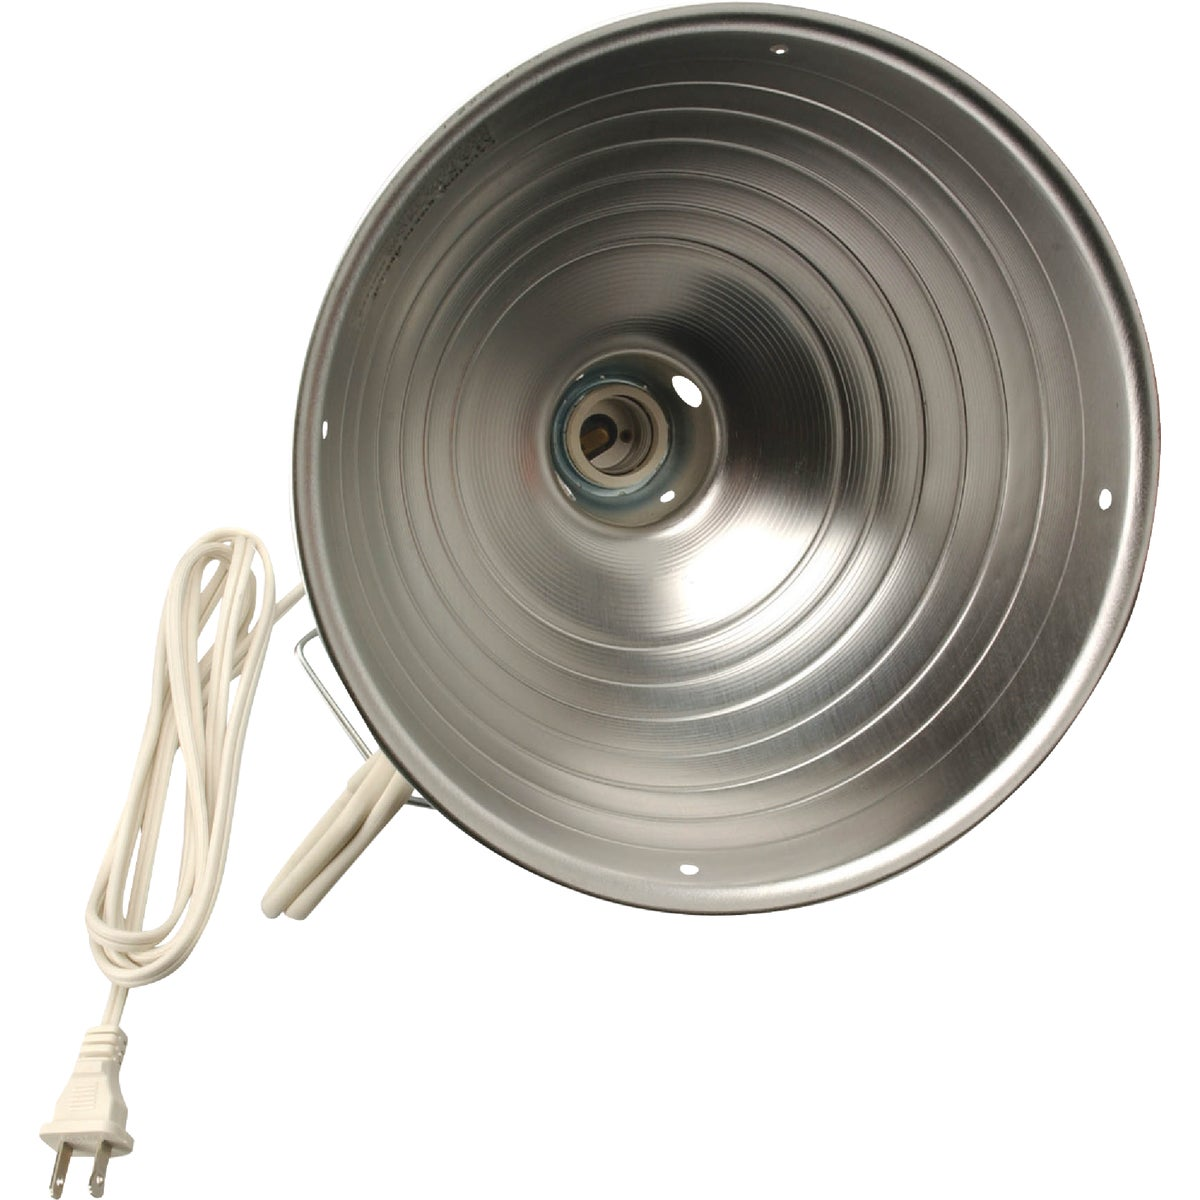 "150W 10"" CLAMP LAMP - 550162 by Coleman Cable Hwg"